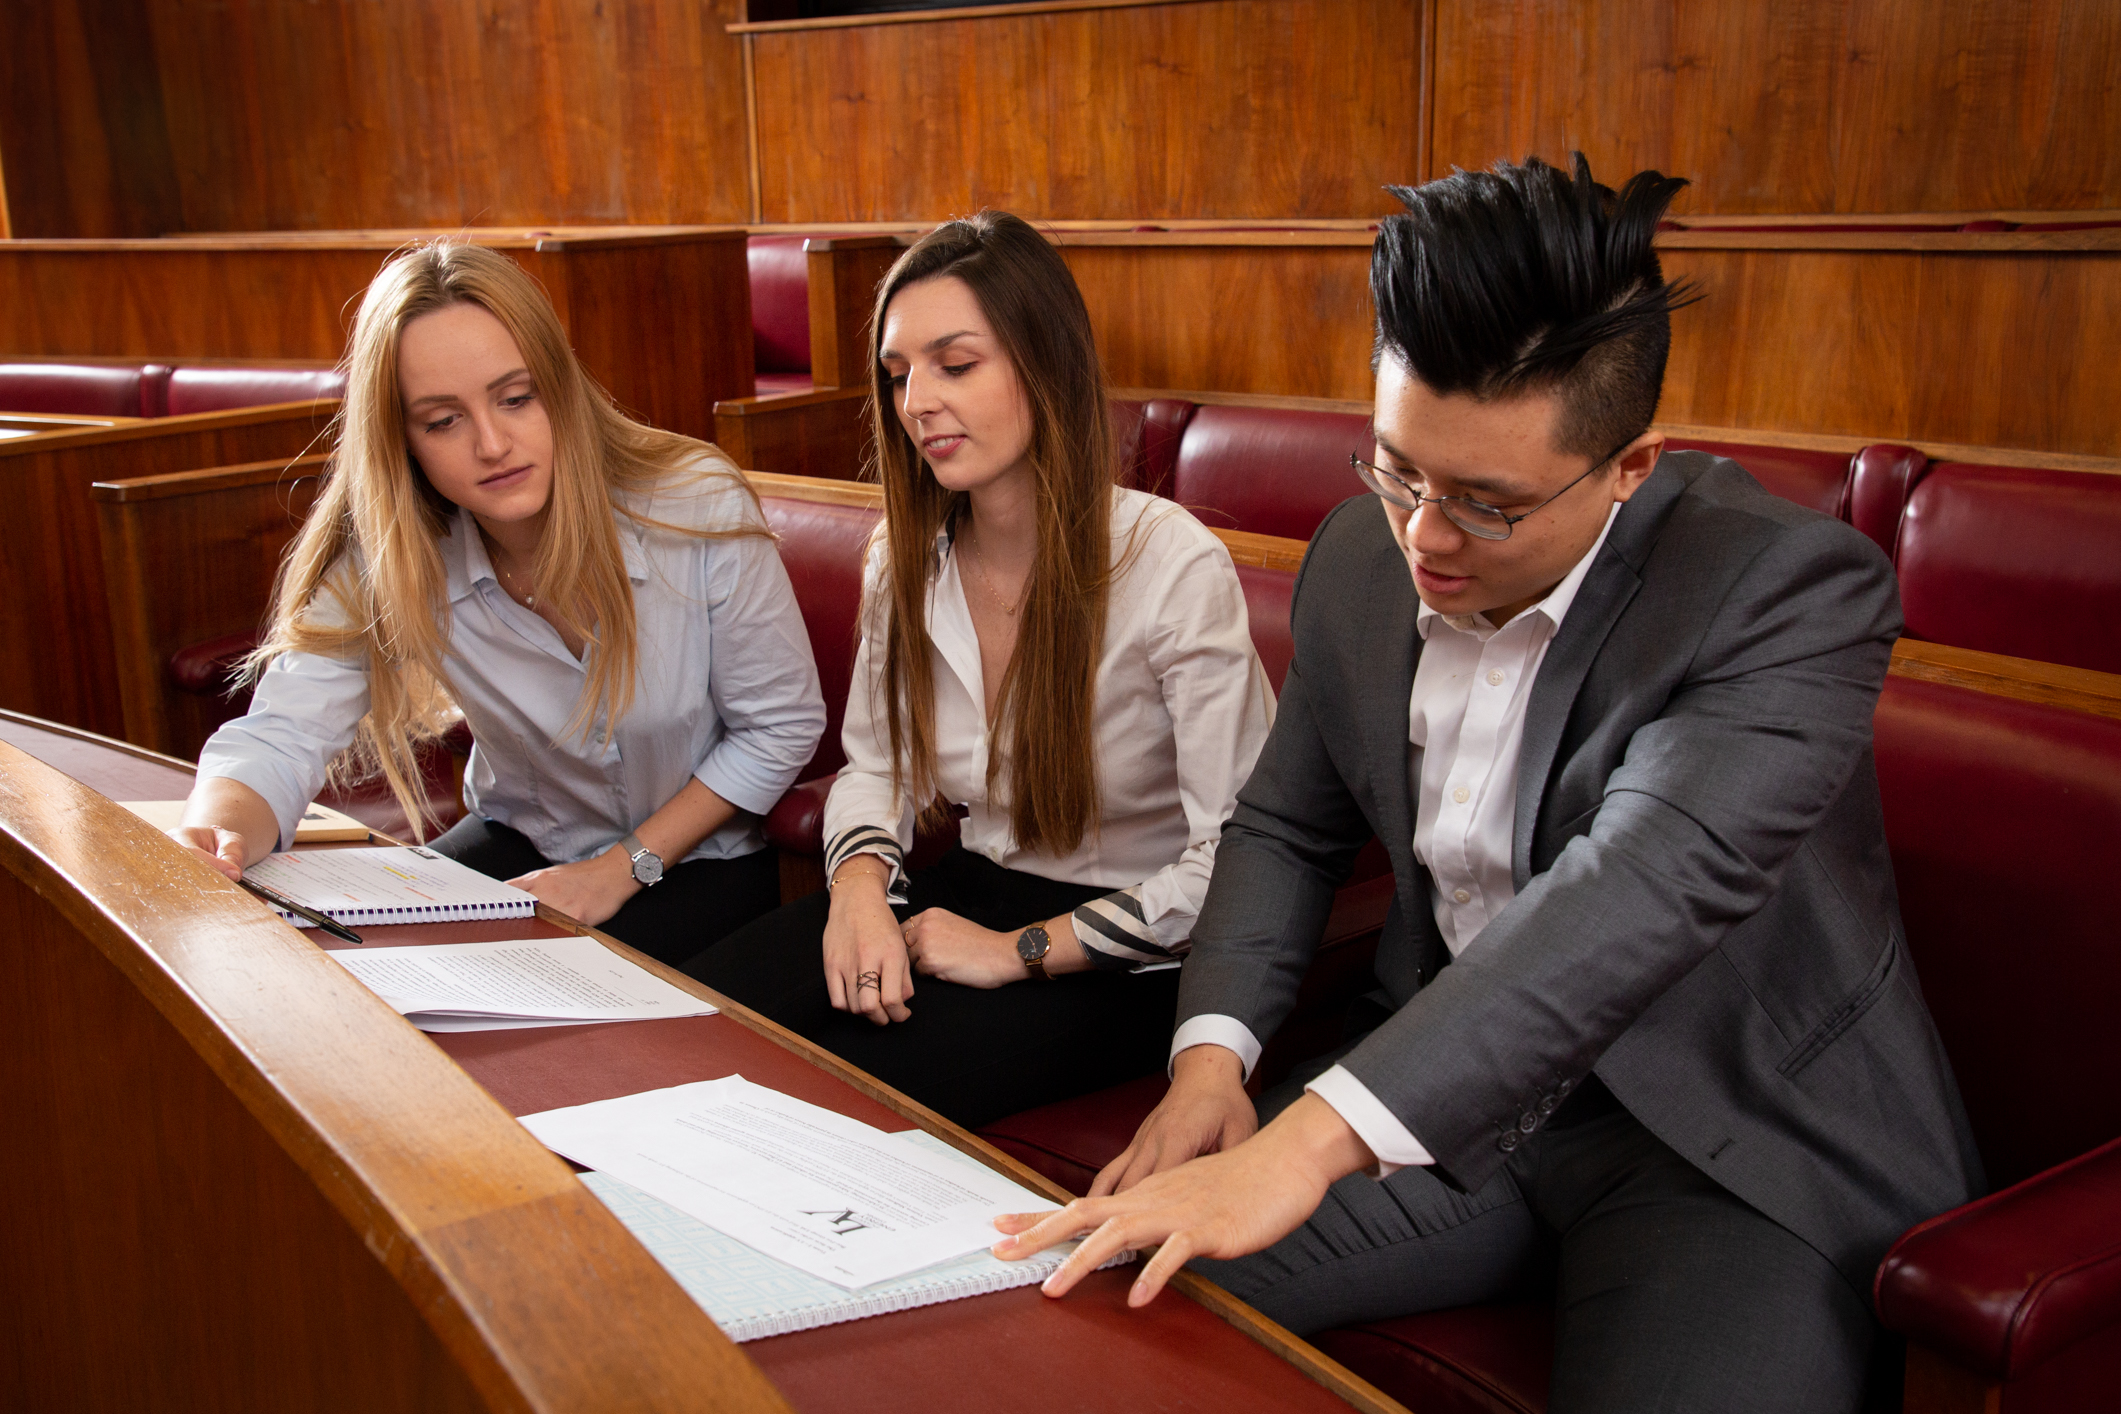 LLM students at the Moot Court